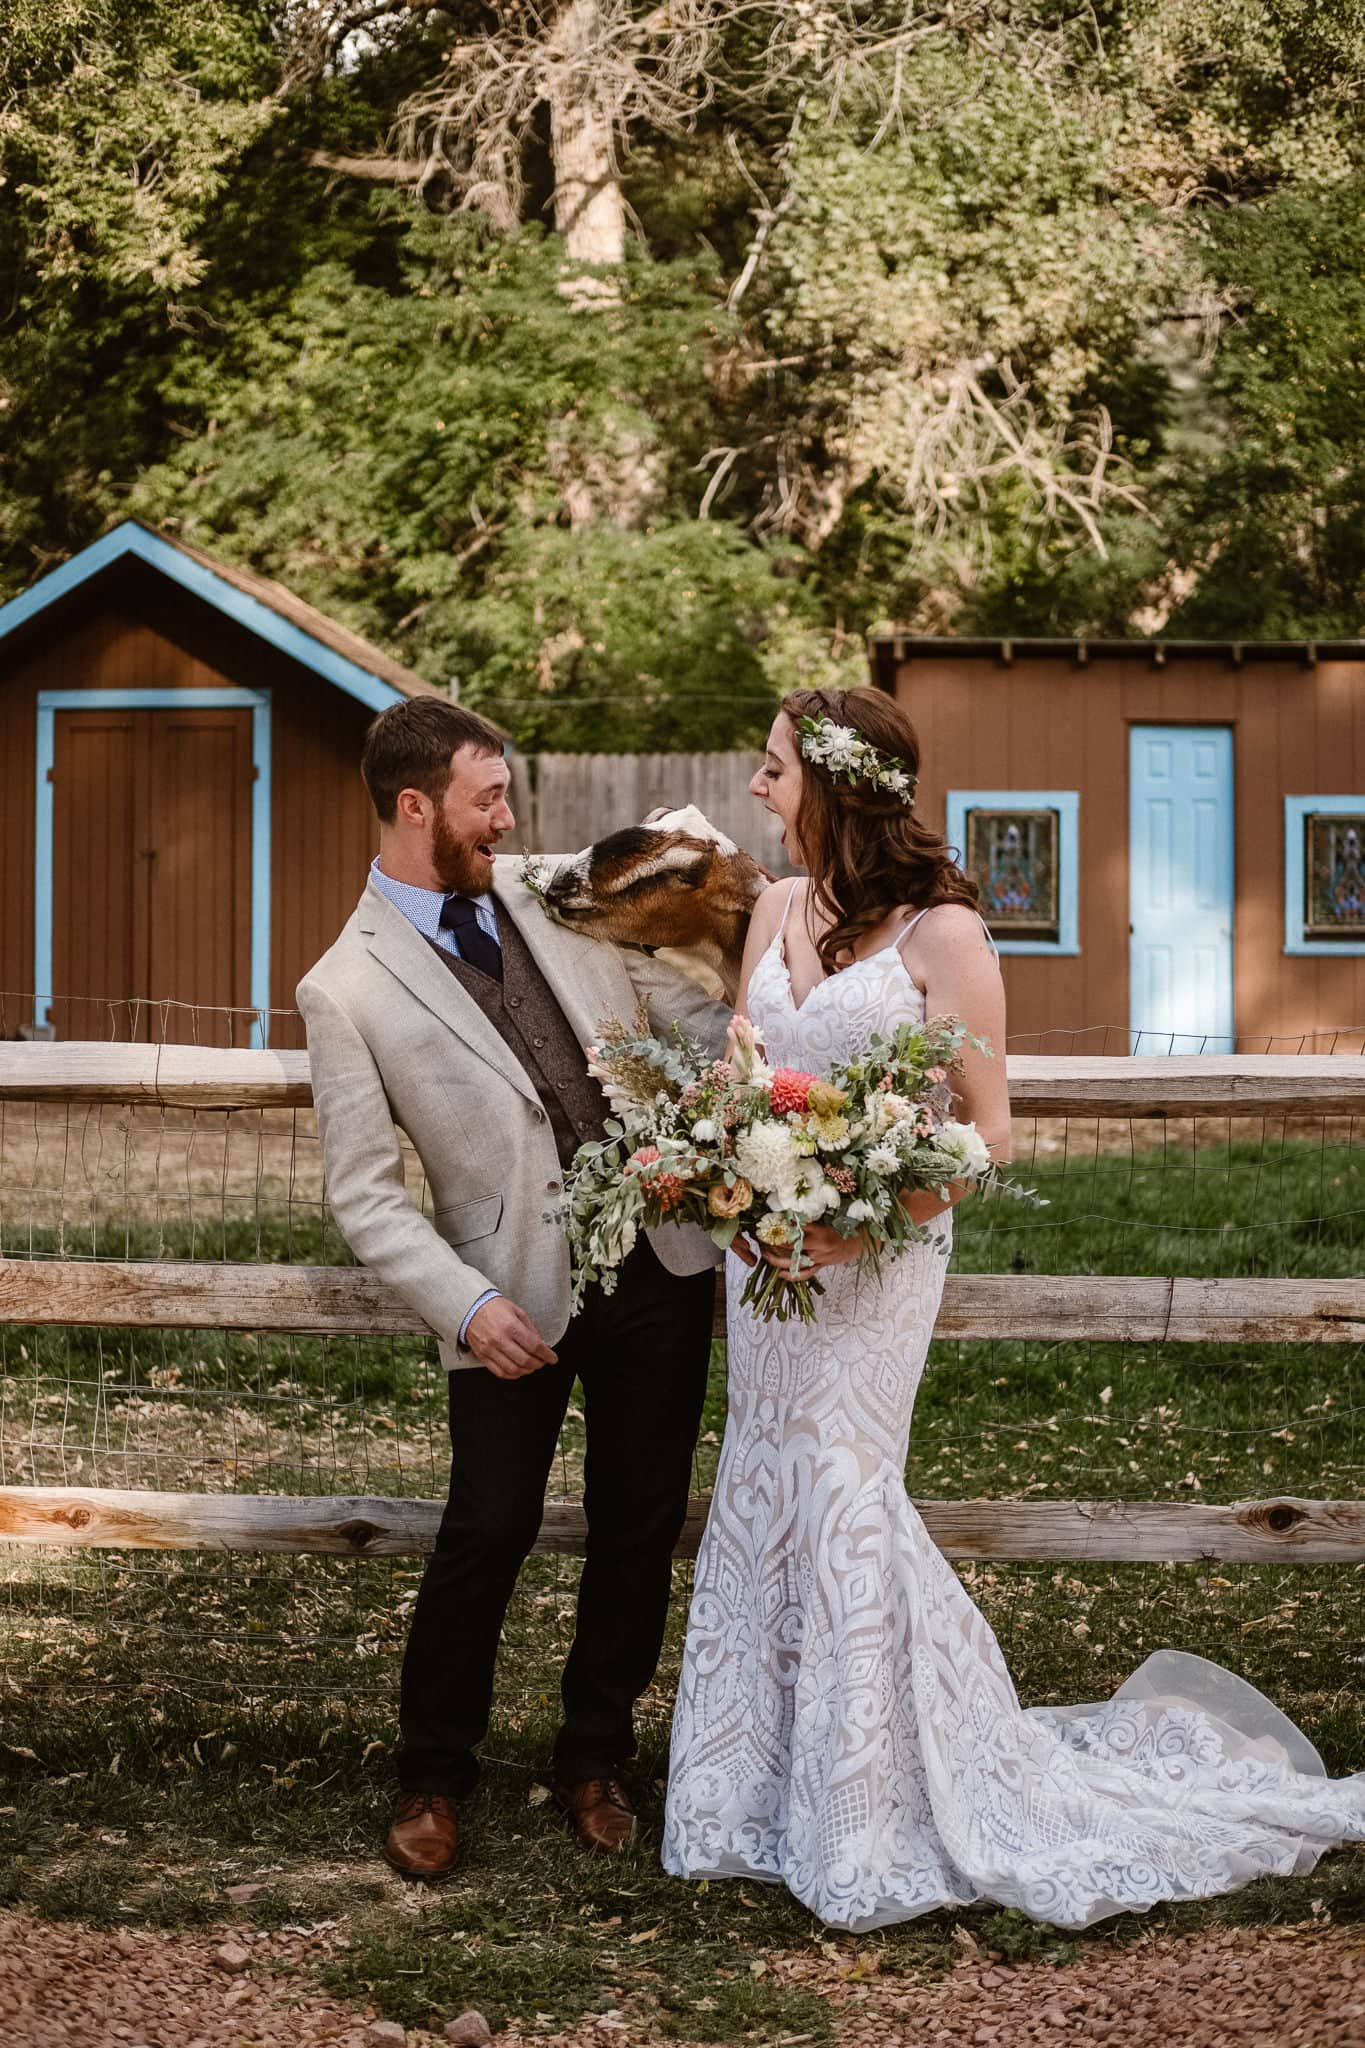 Lyons Farmette wedding photographer, Colorado intimate wedding photographer, bride and groom with goat, goat eating boutonniere